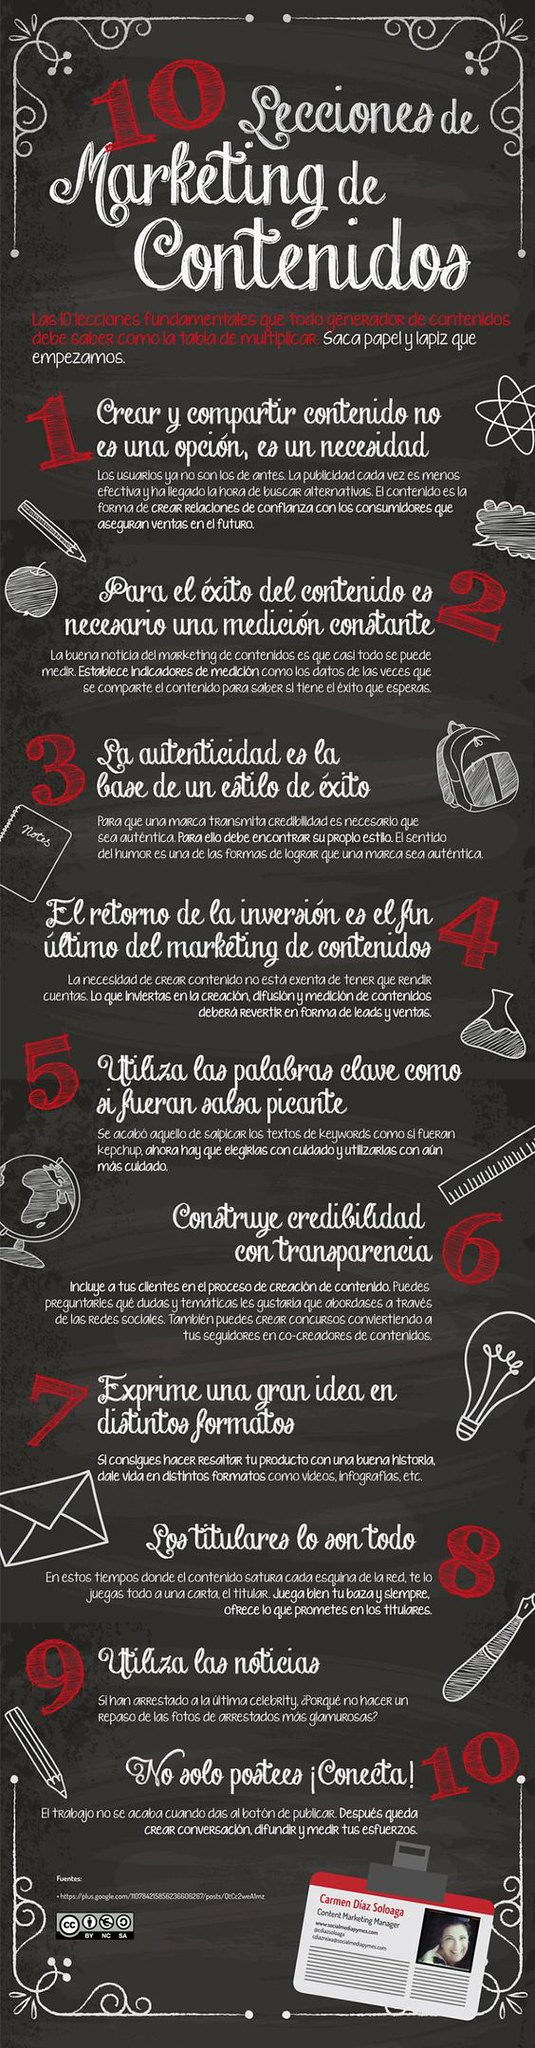 marketing contenidos infografia